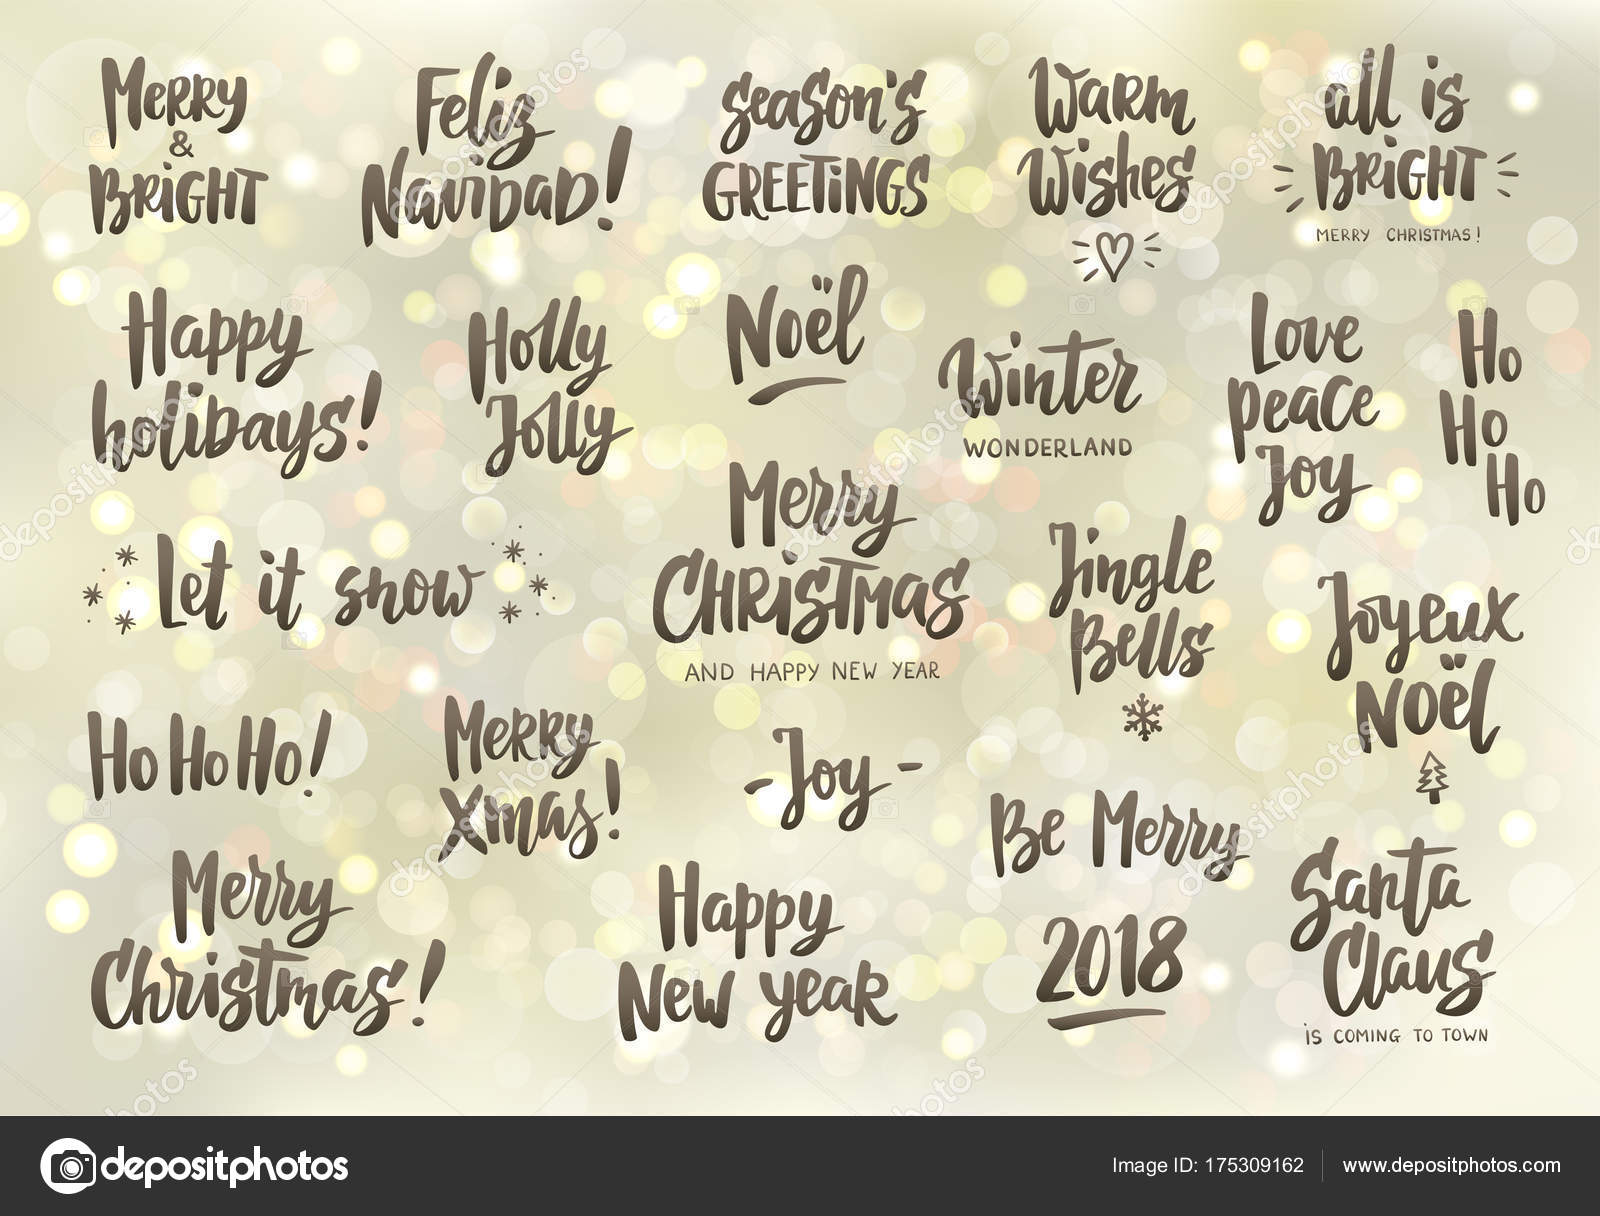 Set of holiday greeting quotes and wishes hand drawn text great set of holiday greeting quotes and wishes hand drawn text brush lettering merry christmas happy new year happy holidays etc great for cards gift tags m4hsunfo